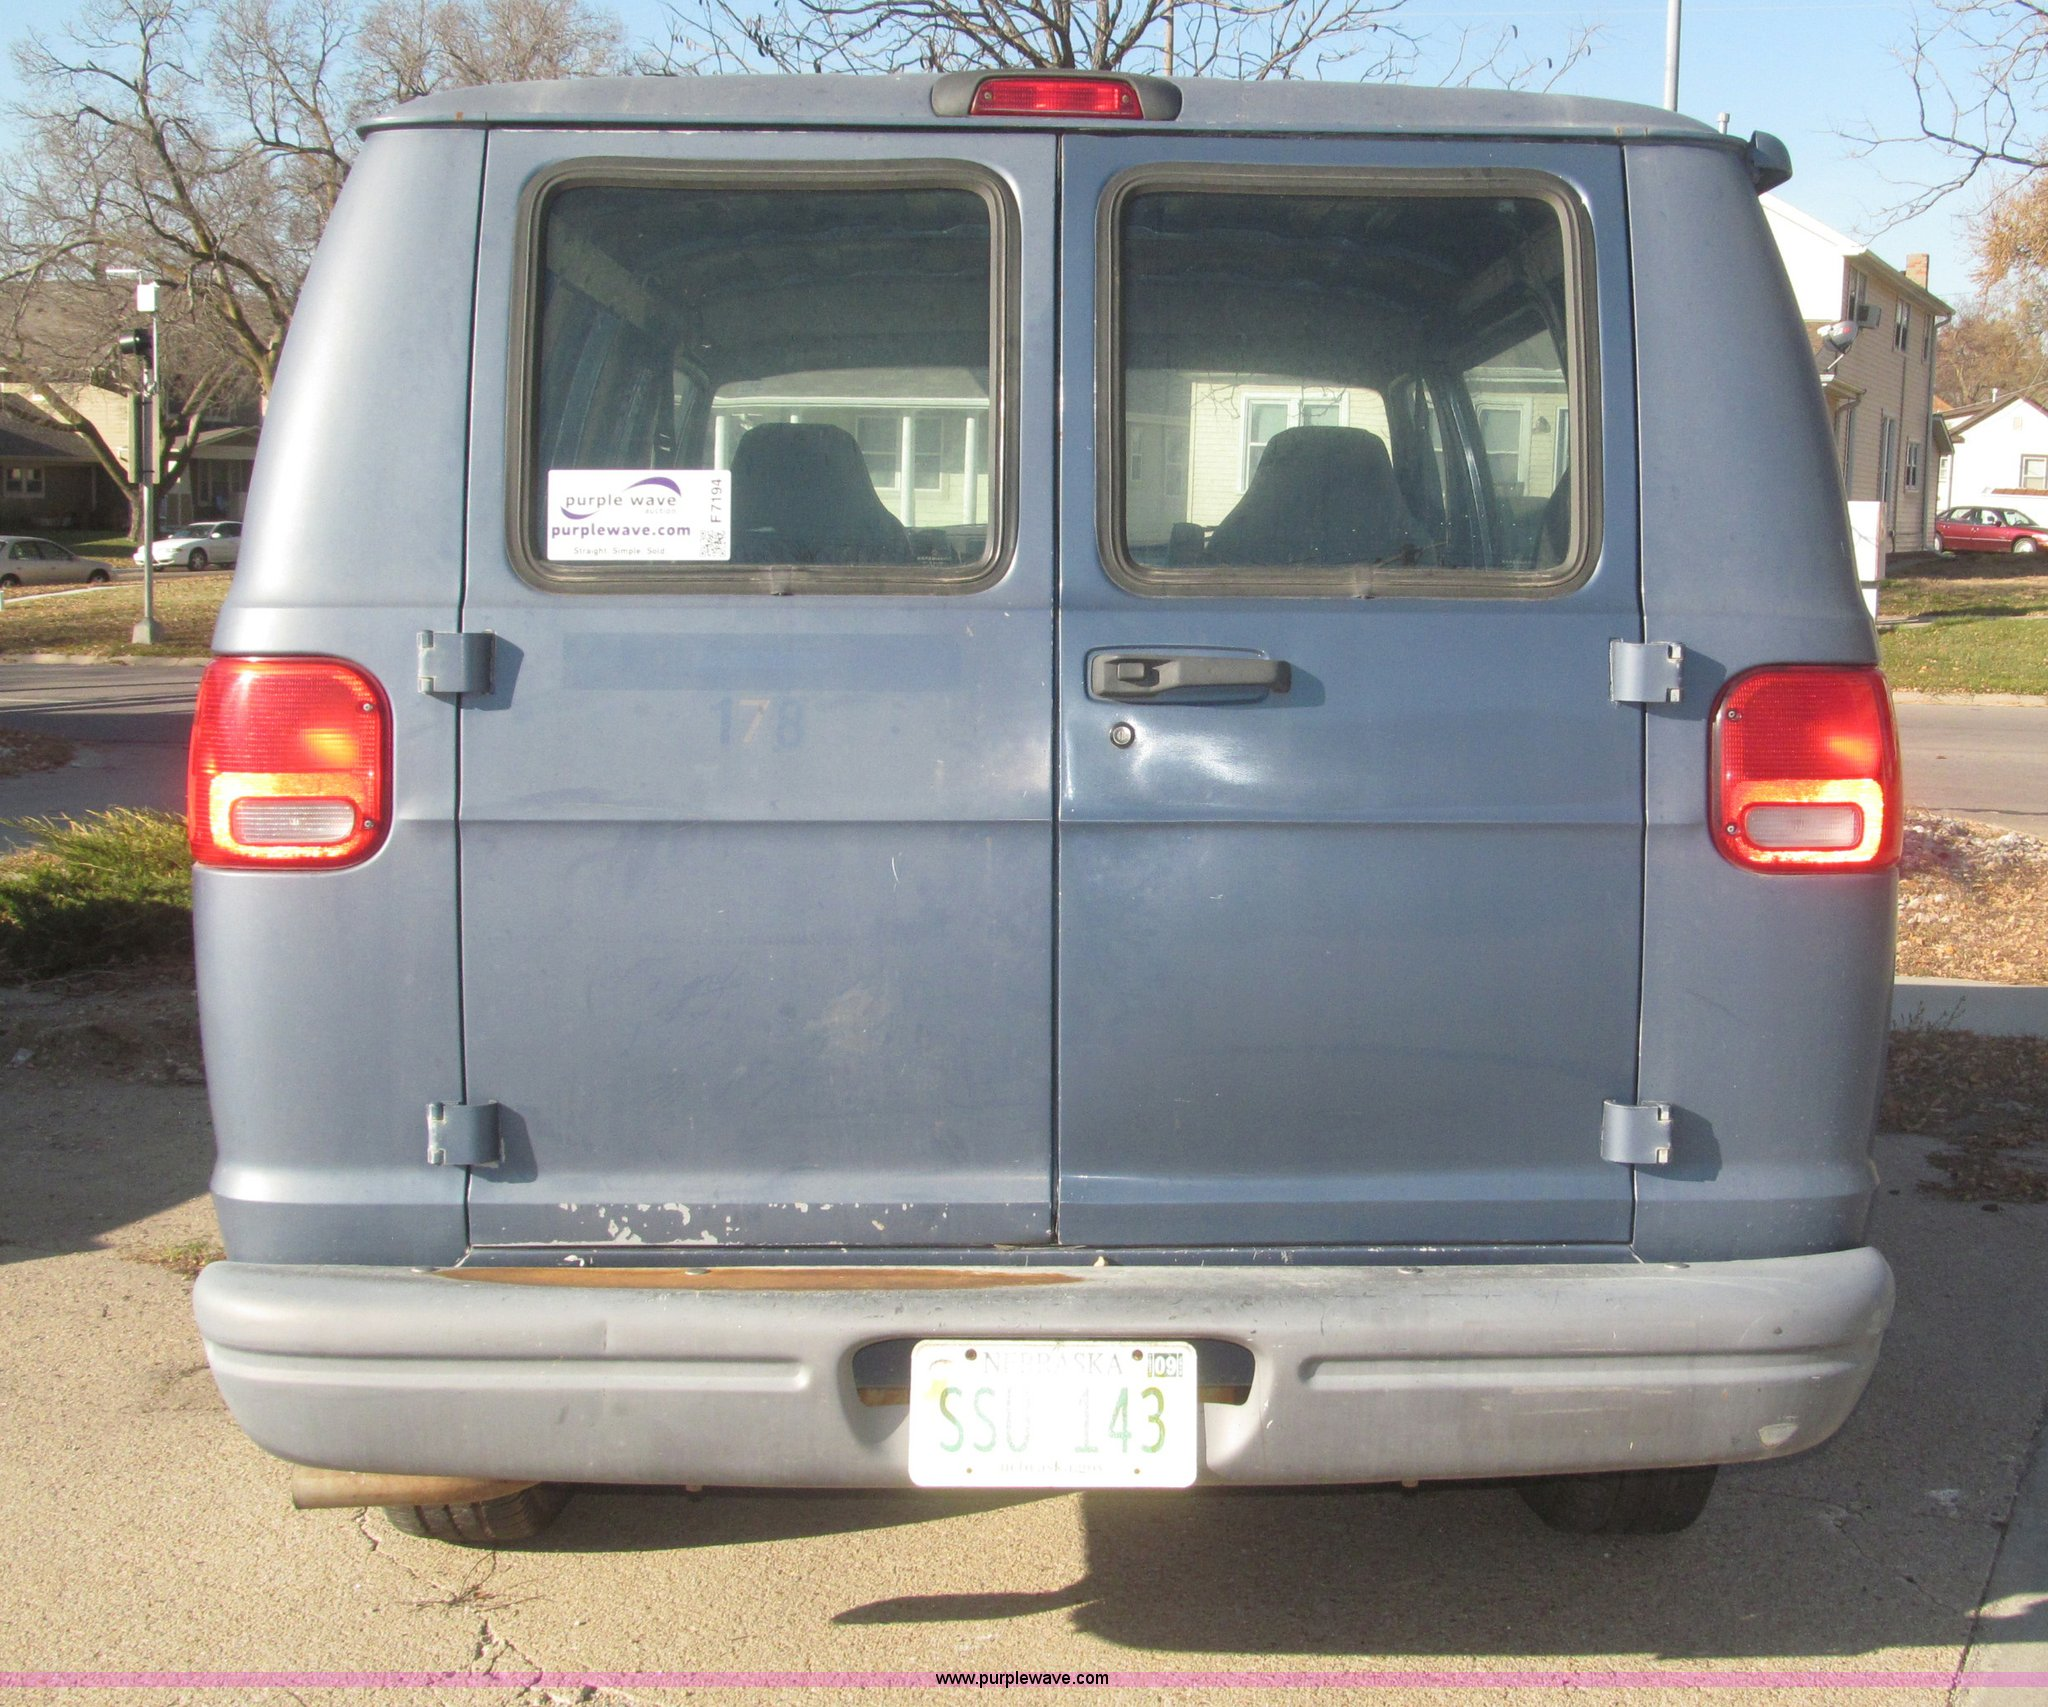 ... 1997 Dodge Ram Van 1500 cargo van Full size in new window ...